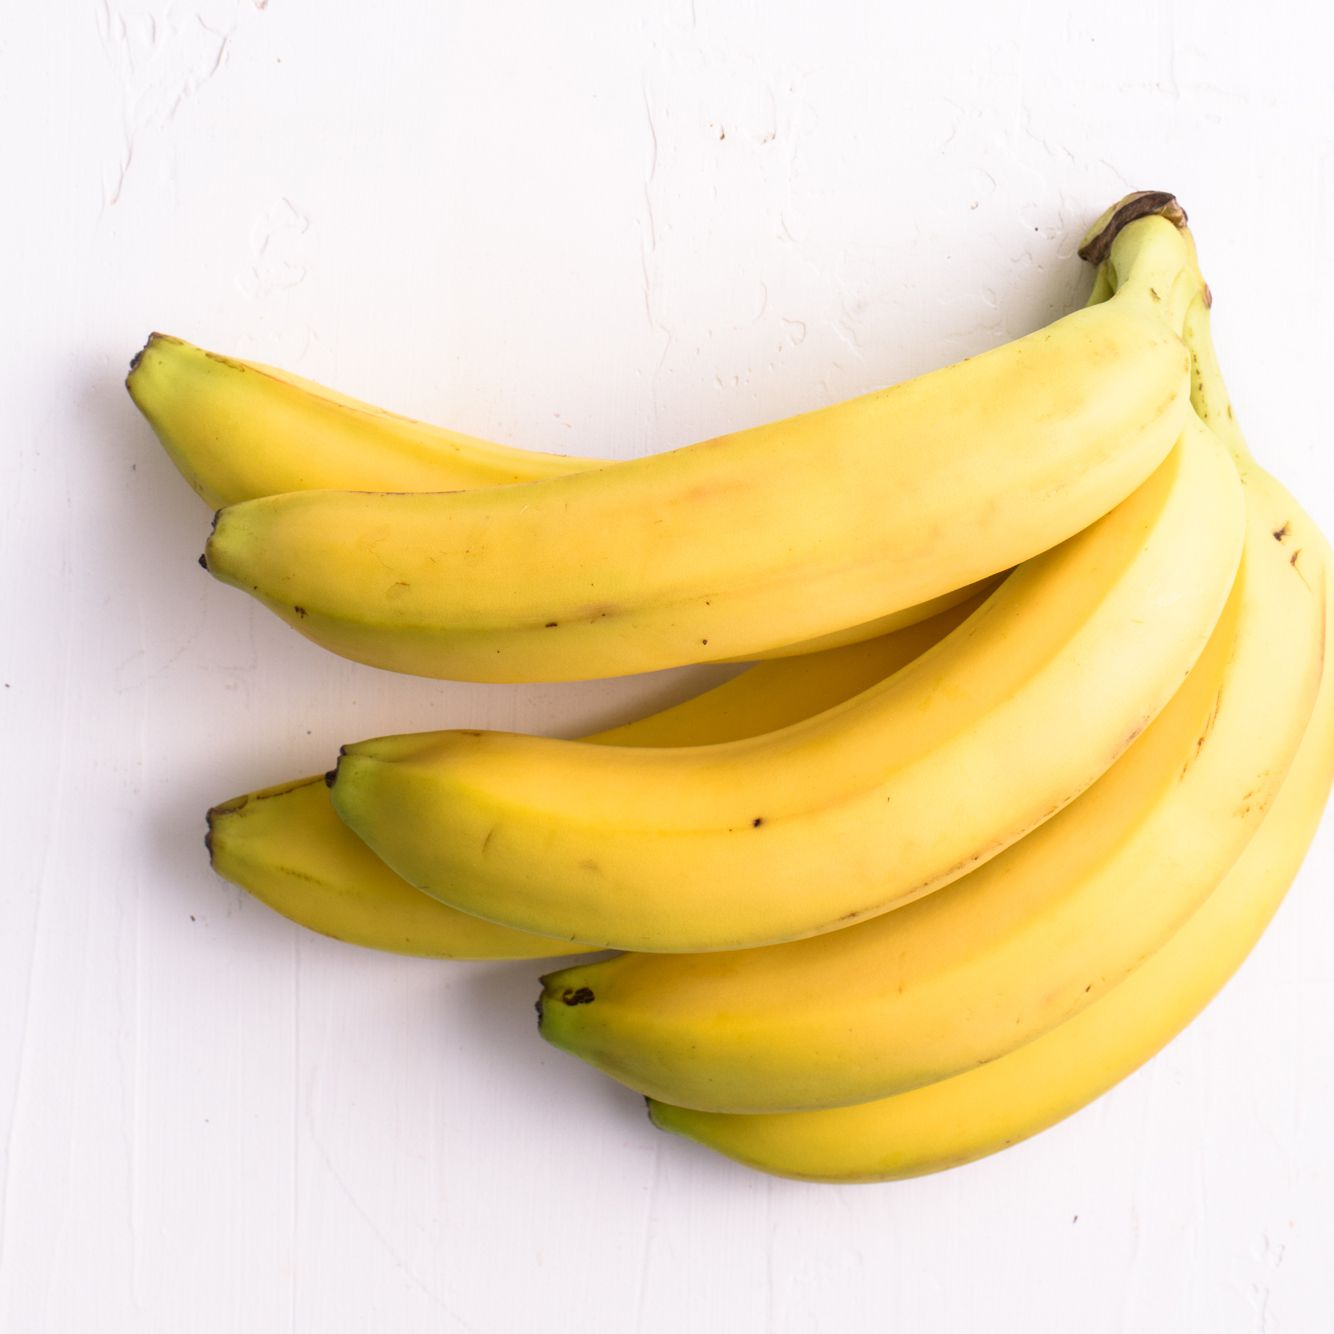 Do Bananas Cause Weight Gain Or Help With Weight Loss